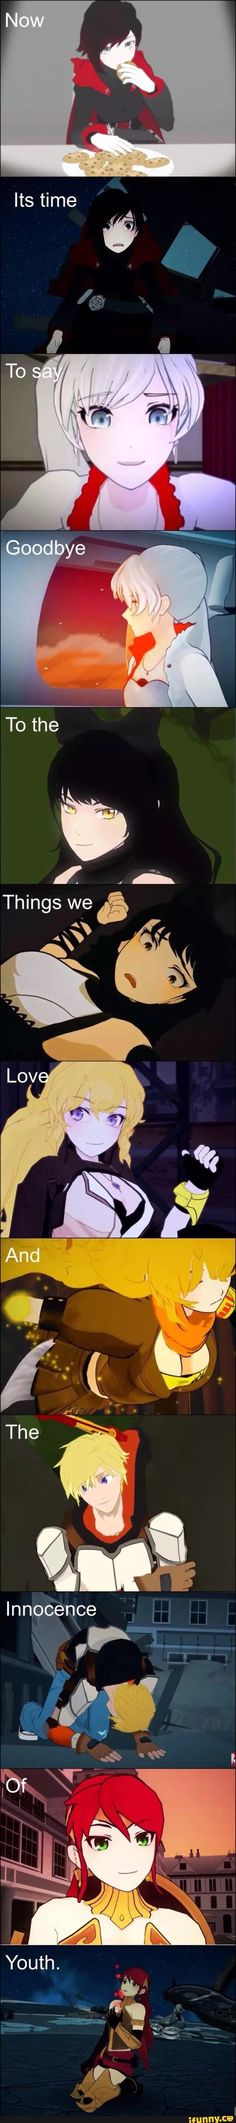 subscribe, rwby, roosterteeth, ozpimp, feels